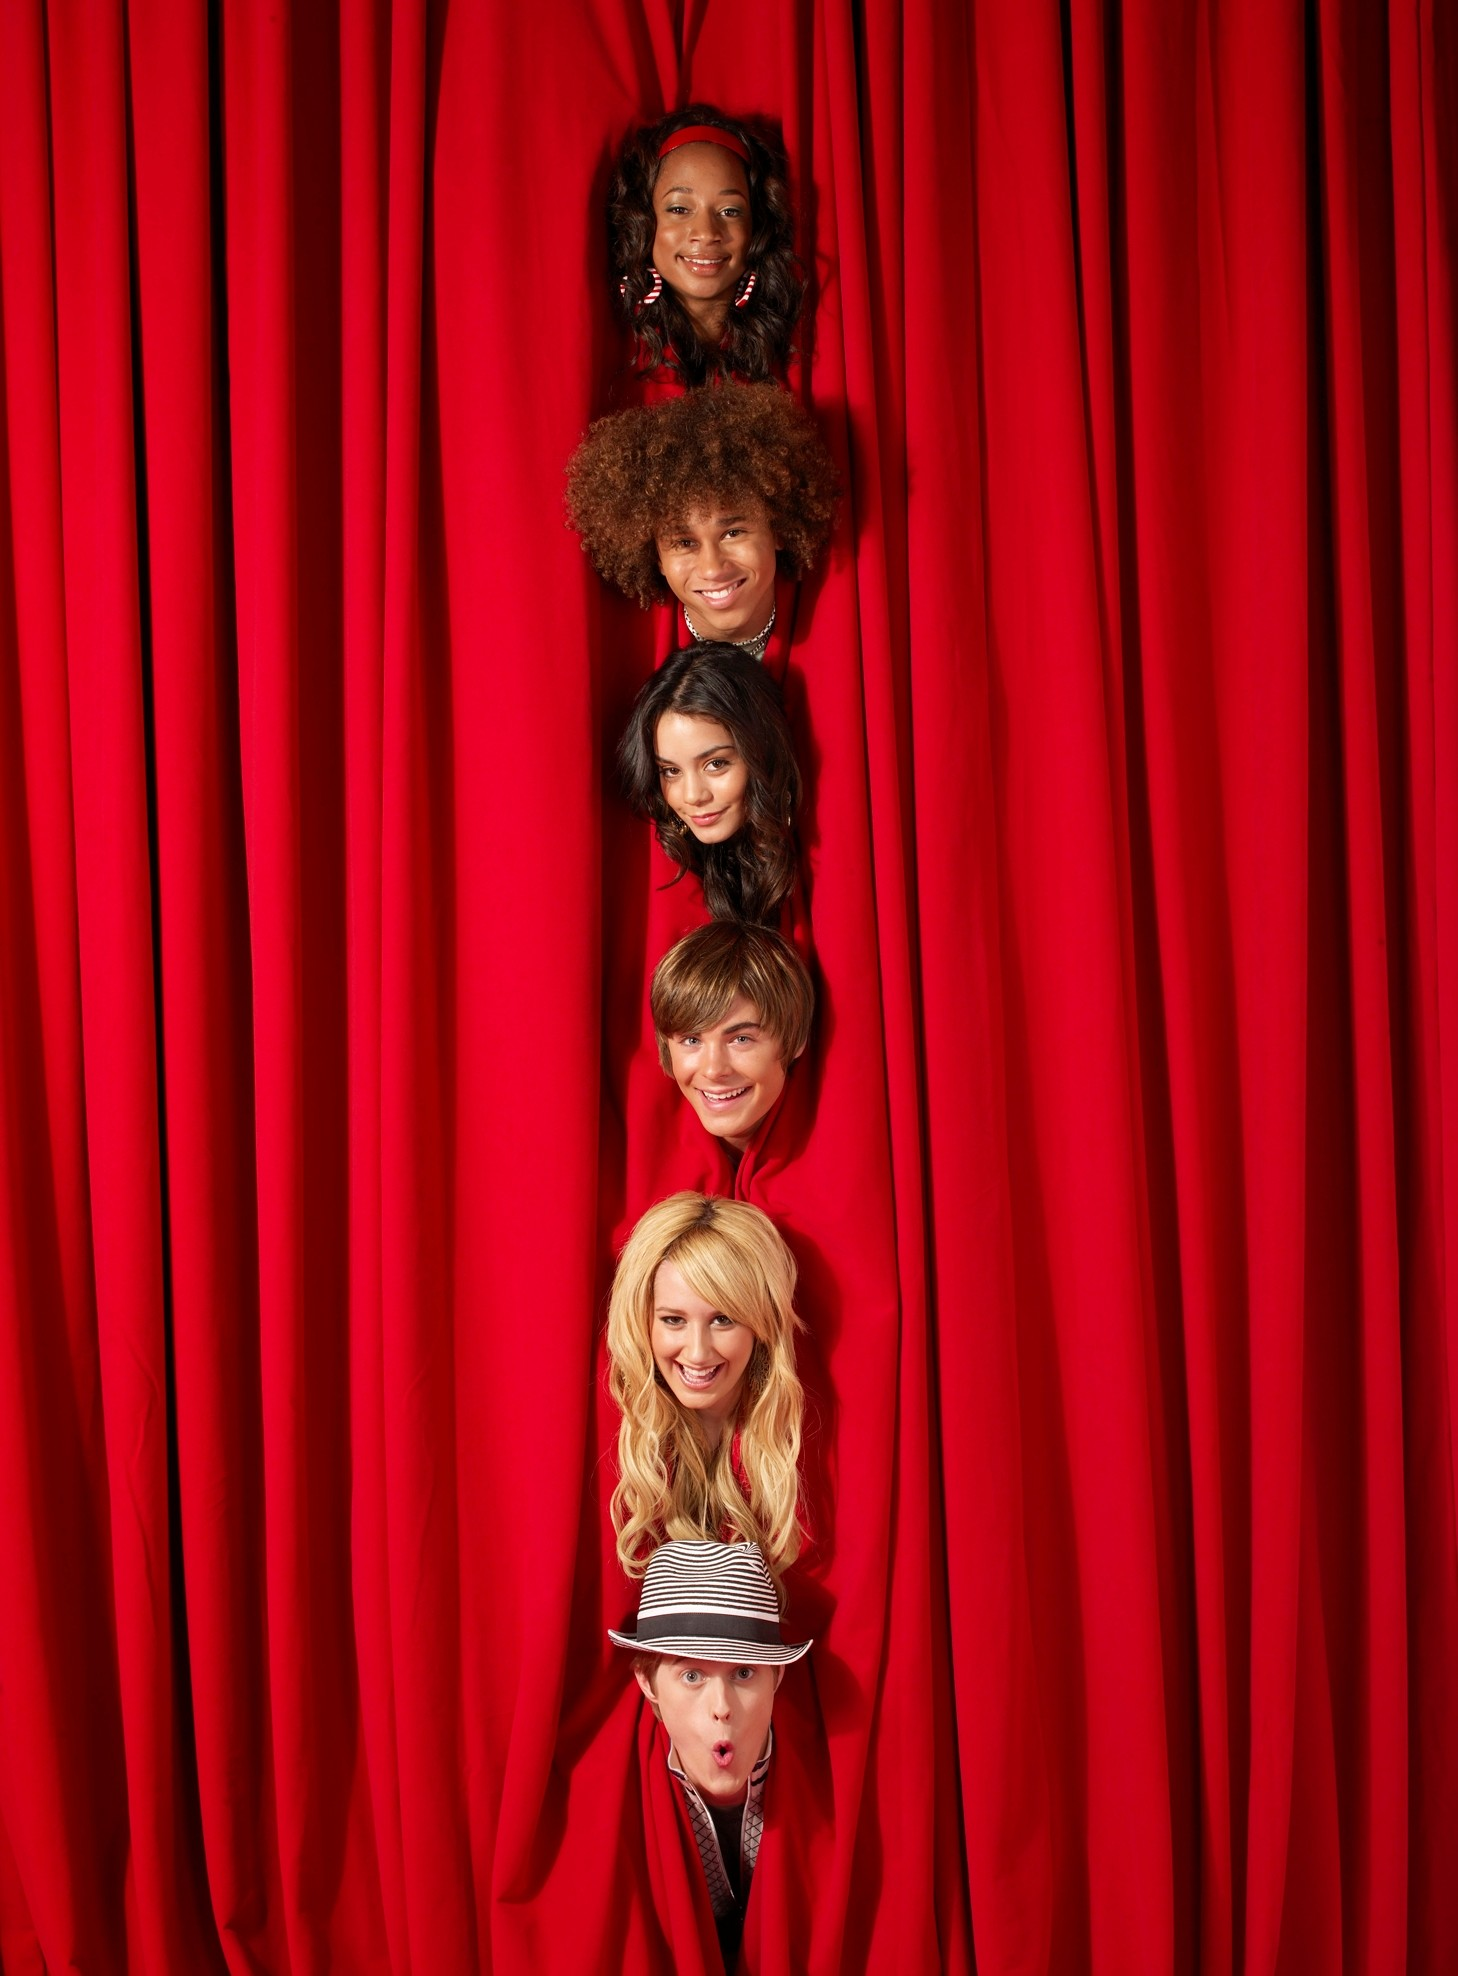 High School Musical Wallpaper 70 Pictures